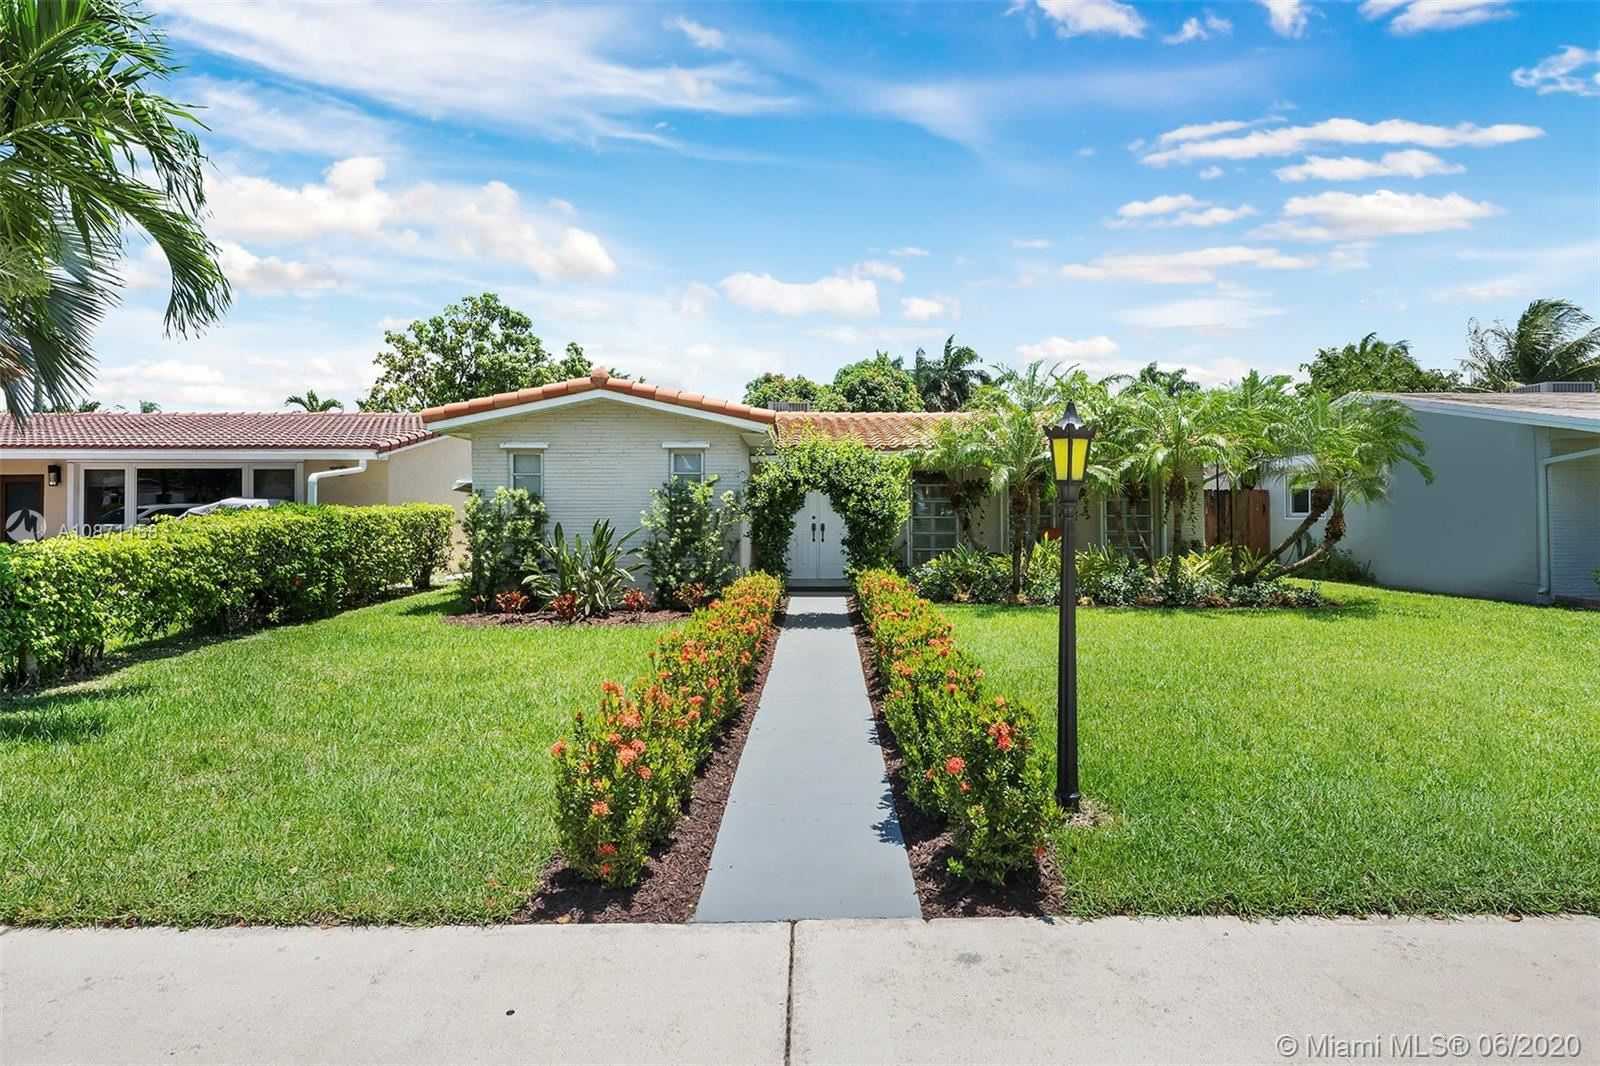 Photo of 1144 Johnson St, Hollywood, FL 33019 (MLS # A10871158)